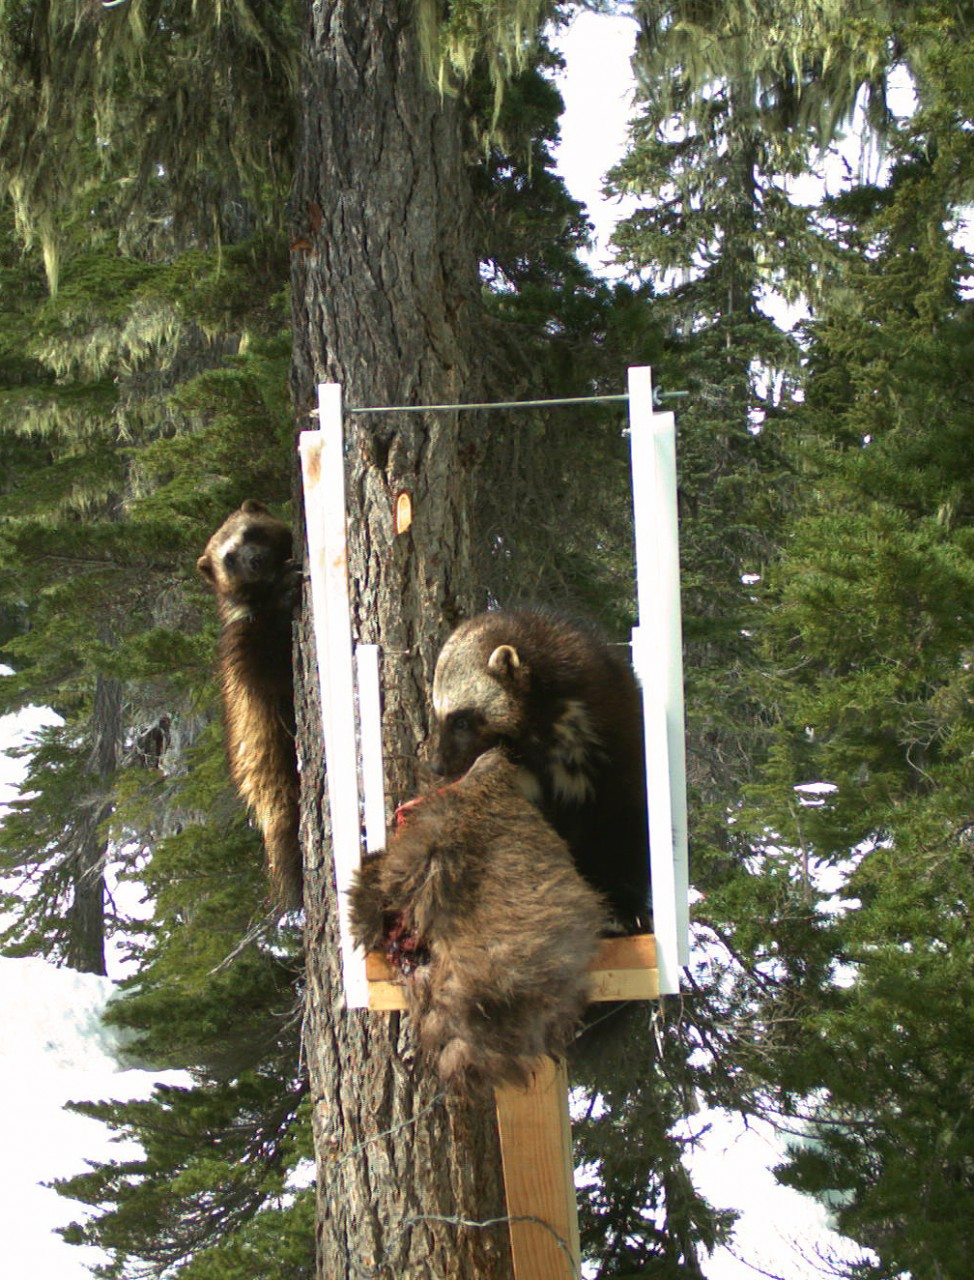 Remote cameras provide researchers with a window into the secret life of wild wolverines. We're finding these animals are far more social than previously thought.